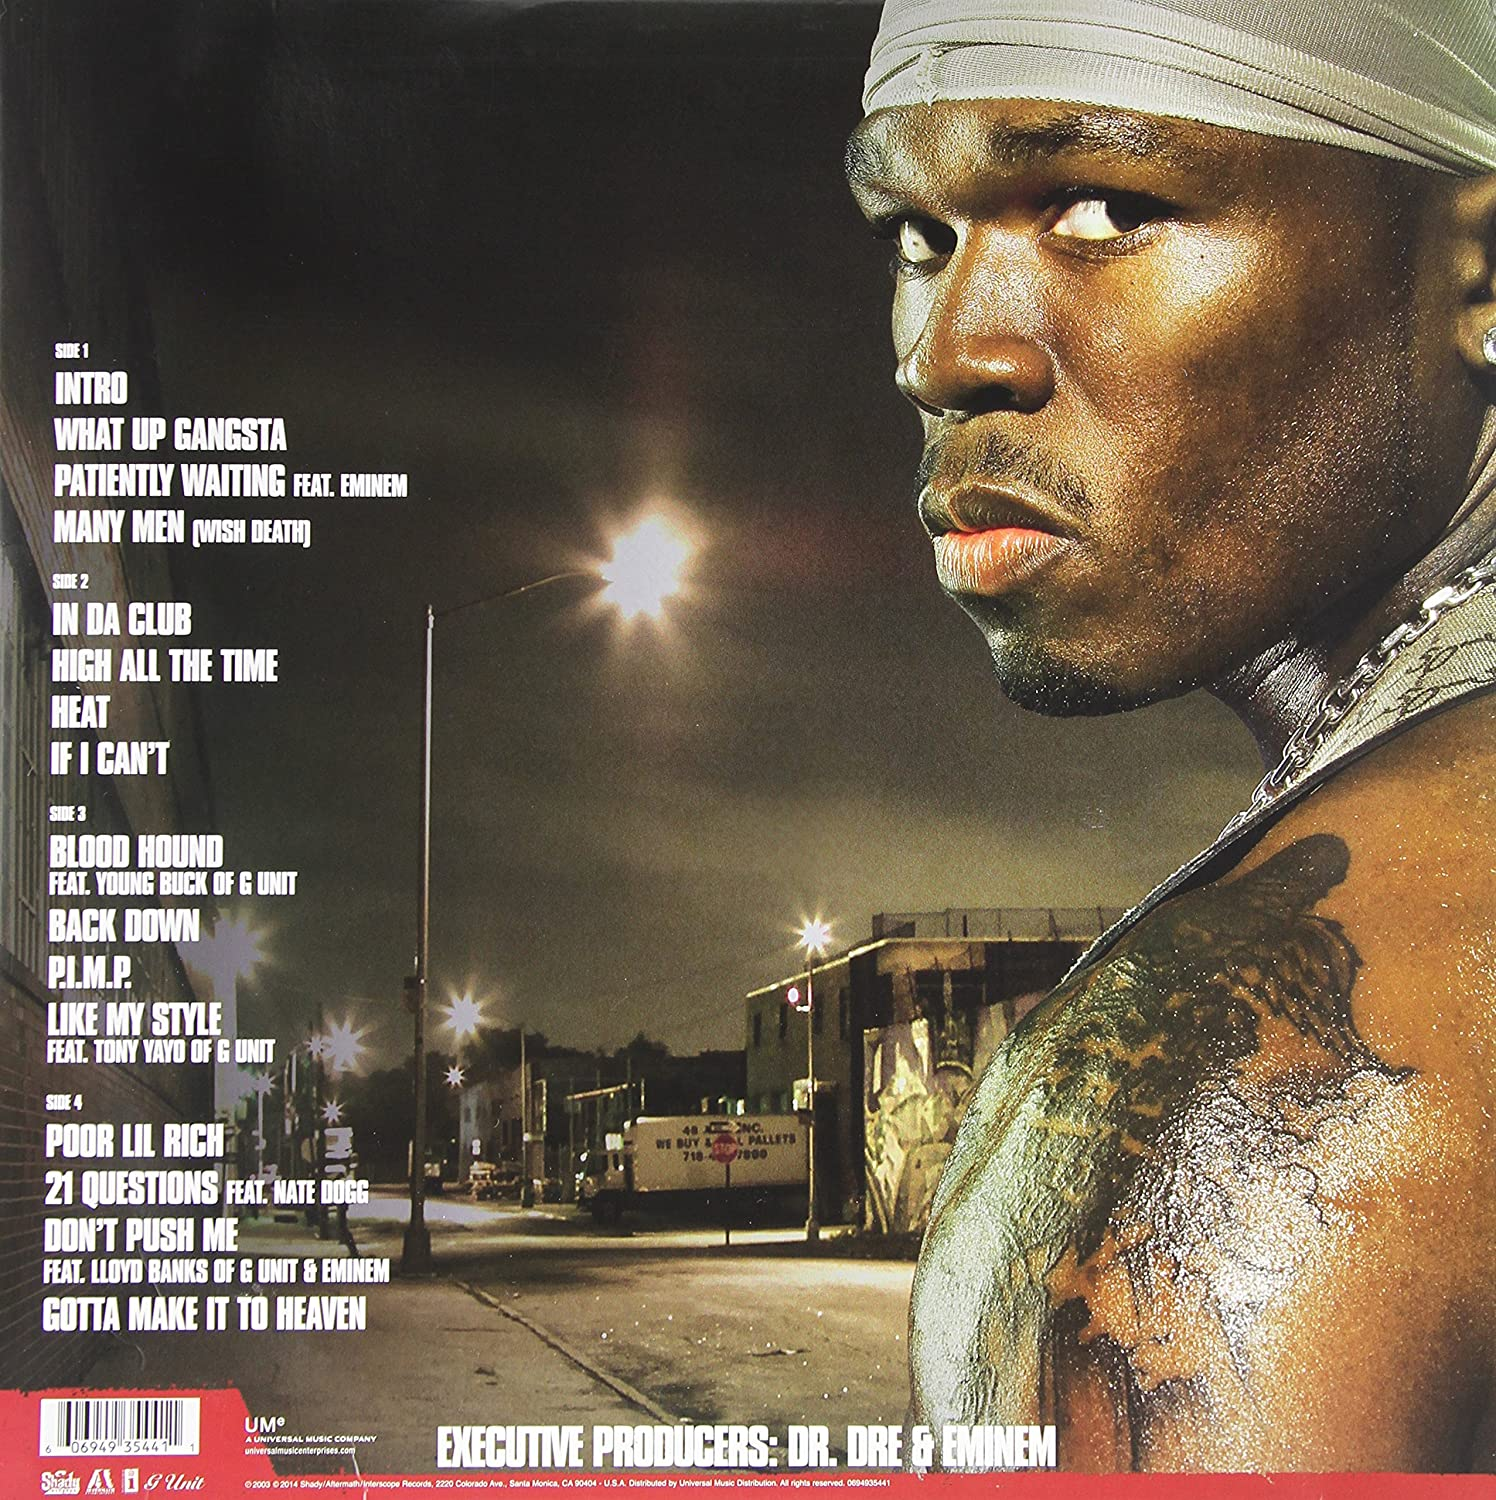 50 Cent - Get Rich or Die Tryin' [Vinyl] - Amazon.com Music